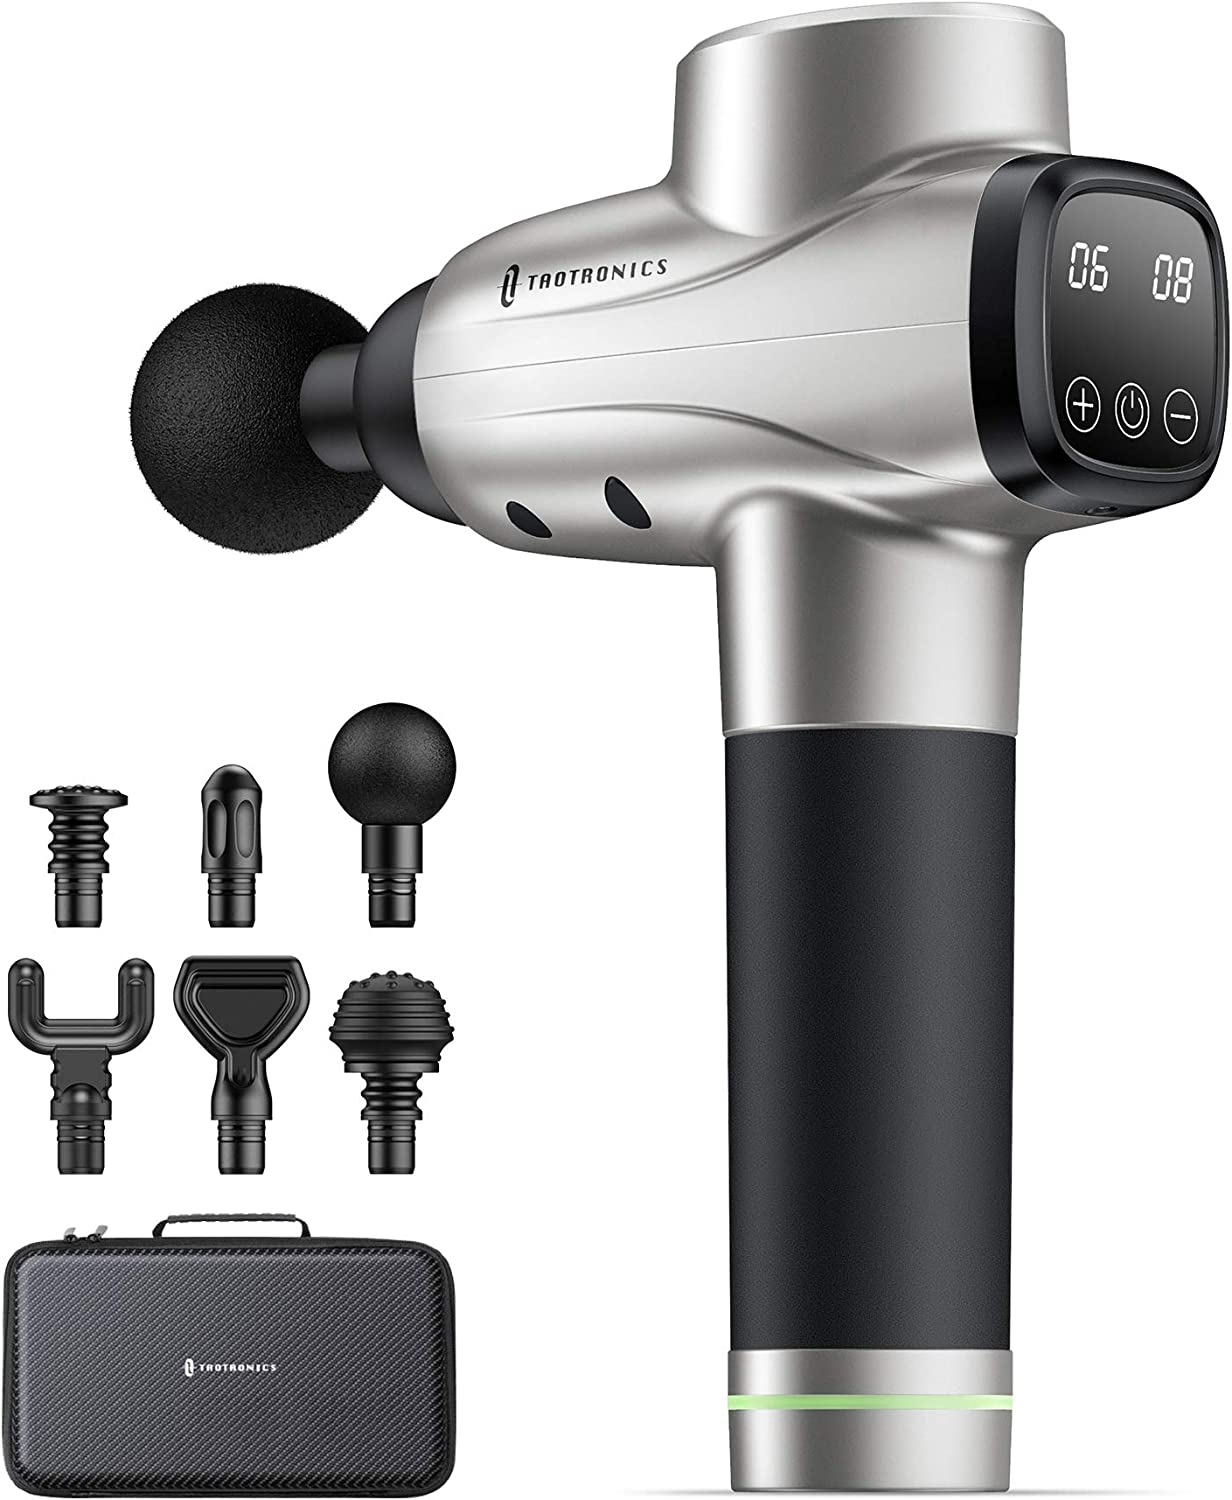 Massage Gun TaoTronics Professional Deep Tissue Muscle Massager Gun Percussion Handheld Electric Muscle Massager with 10 Speed Levels 6 Massage Heads for Gym Office Home Post-Workout Recovery Silver